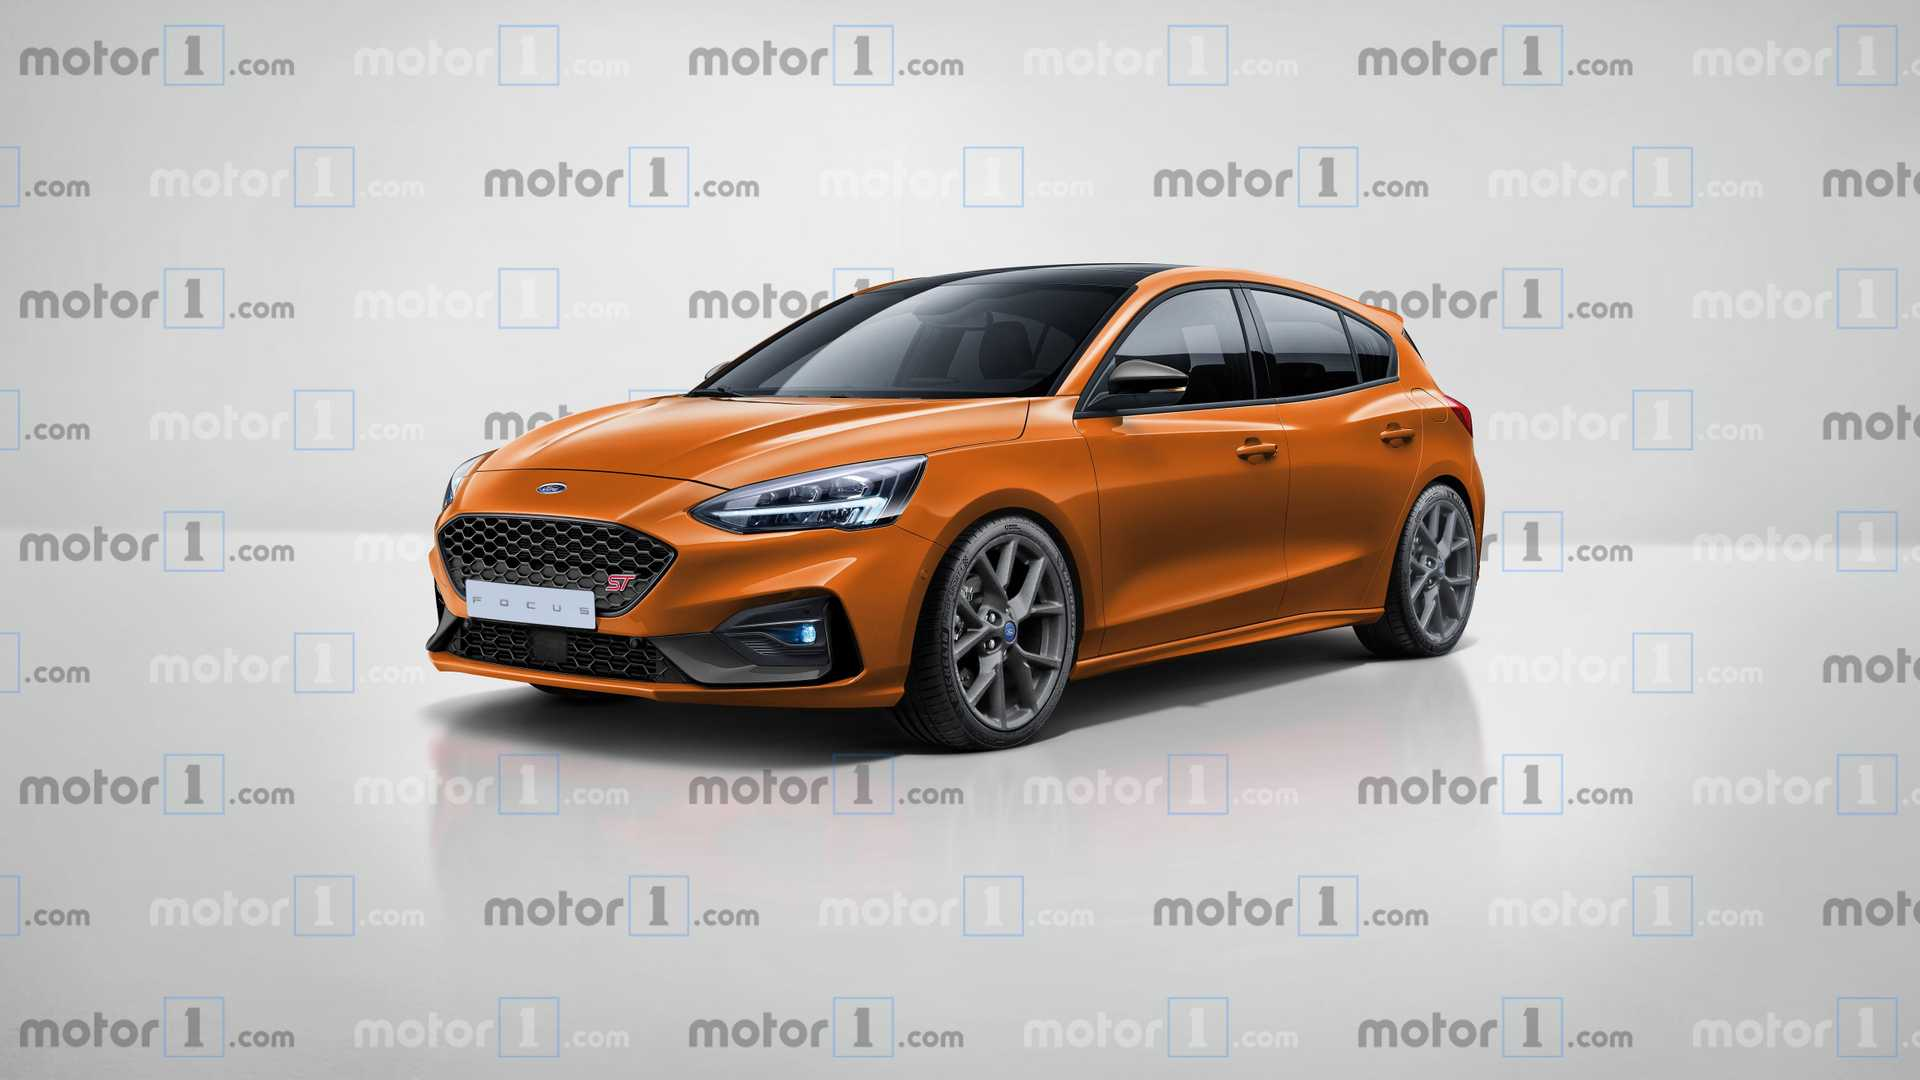 2019 Ford Focus St Puts On Production Clothes In Digital World